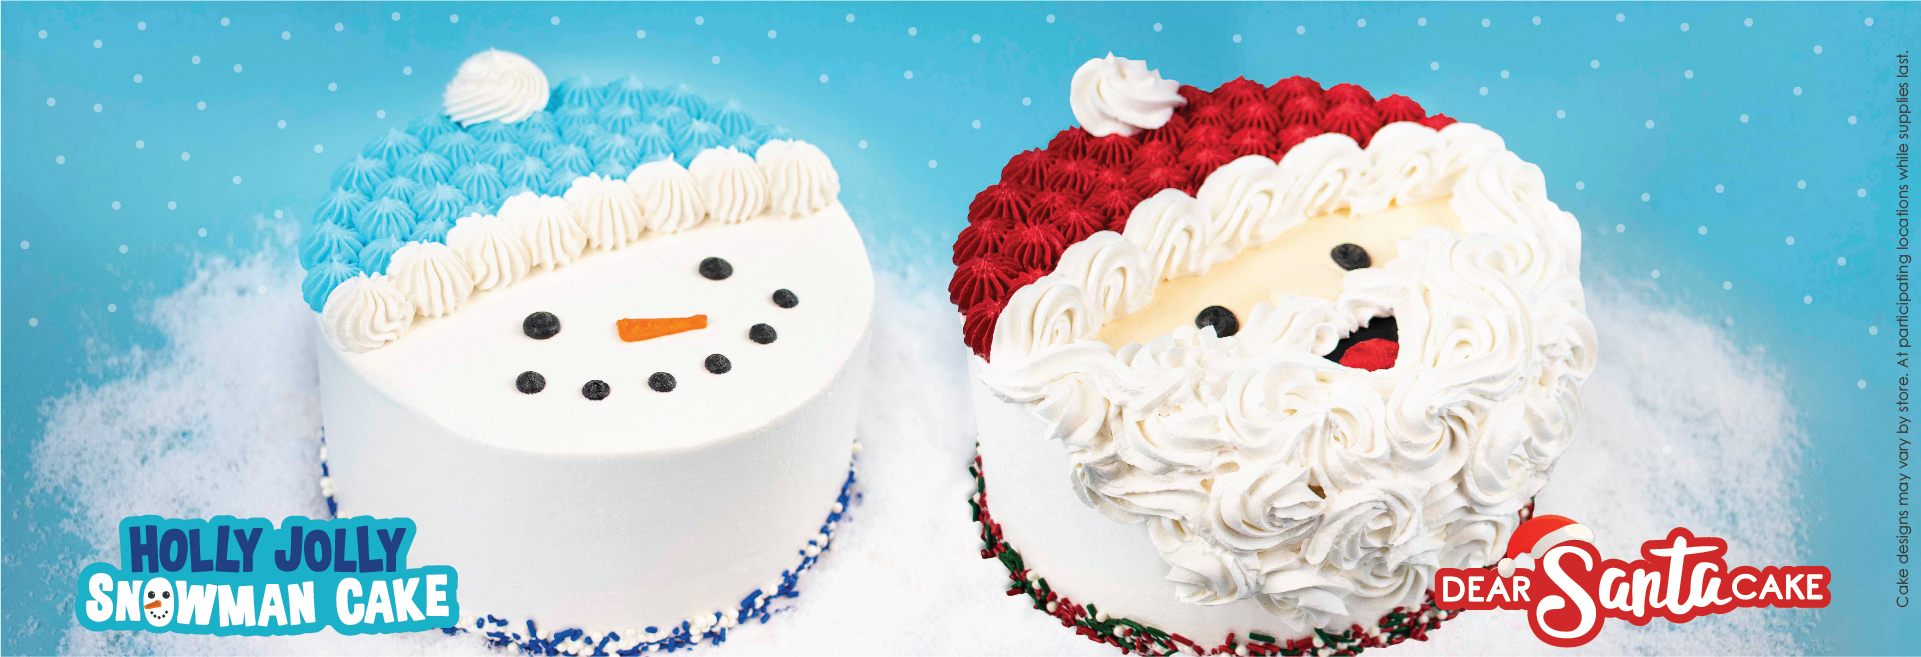 An image of our Holly Jolly Snowman and Dear Santa Cakes. Froyo-yo-yo! The holiday spirit is best celebrated with froyo cakes. Made in house and customizable, our Holly Jolly Snowman and Dear Santa cakes are ready to bring holiday cheer to your holiday festivities. Order one today!